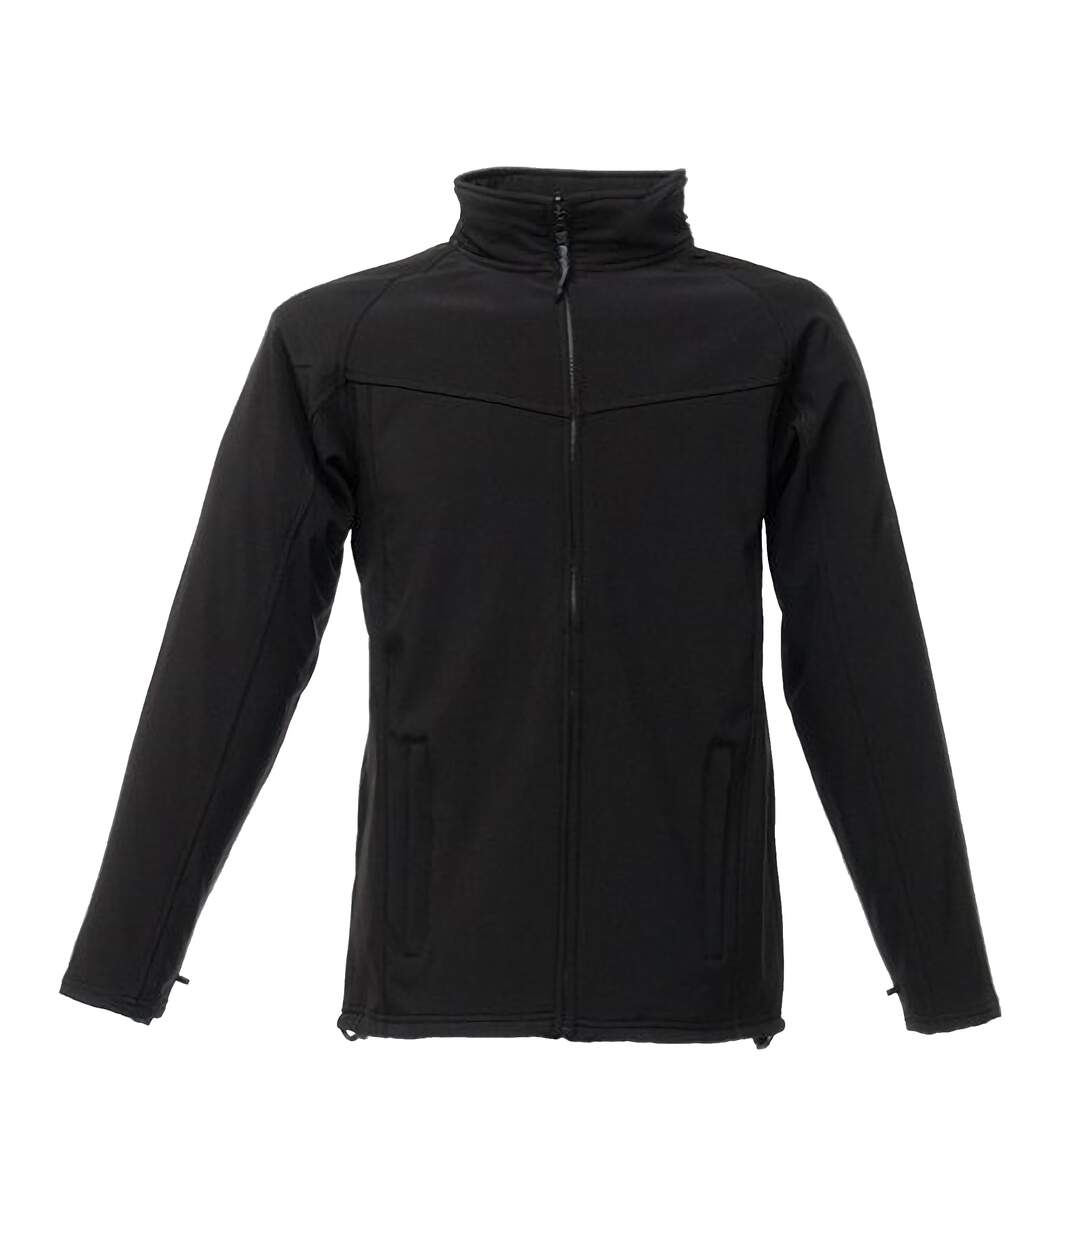 Regatta Professional Mens Uproar Softshell Wind Resistant Fleece Jacket (Black/Black) - UTBC811